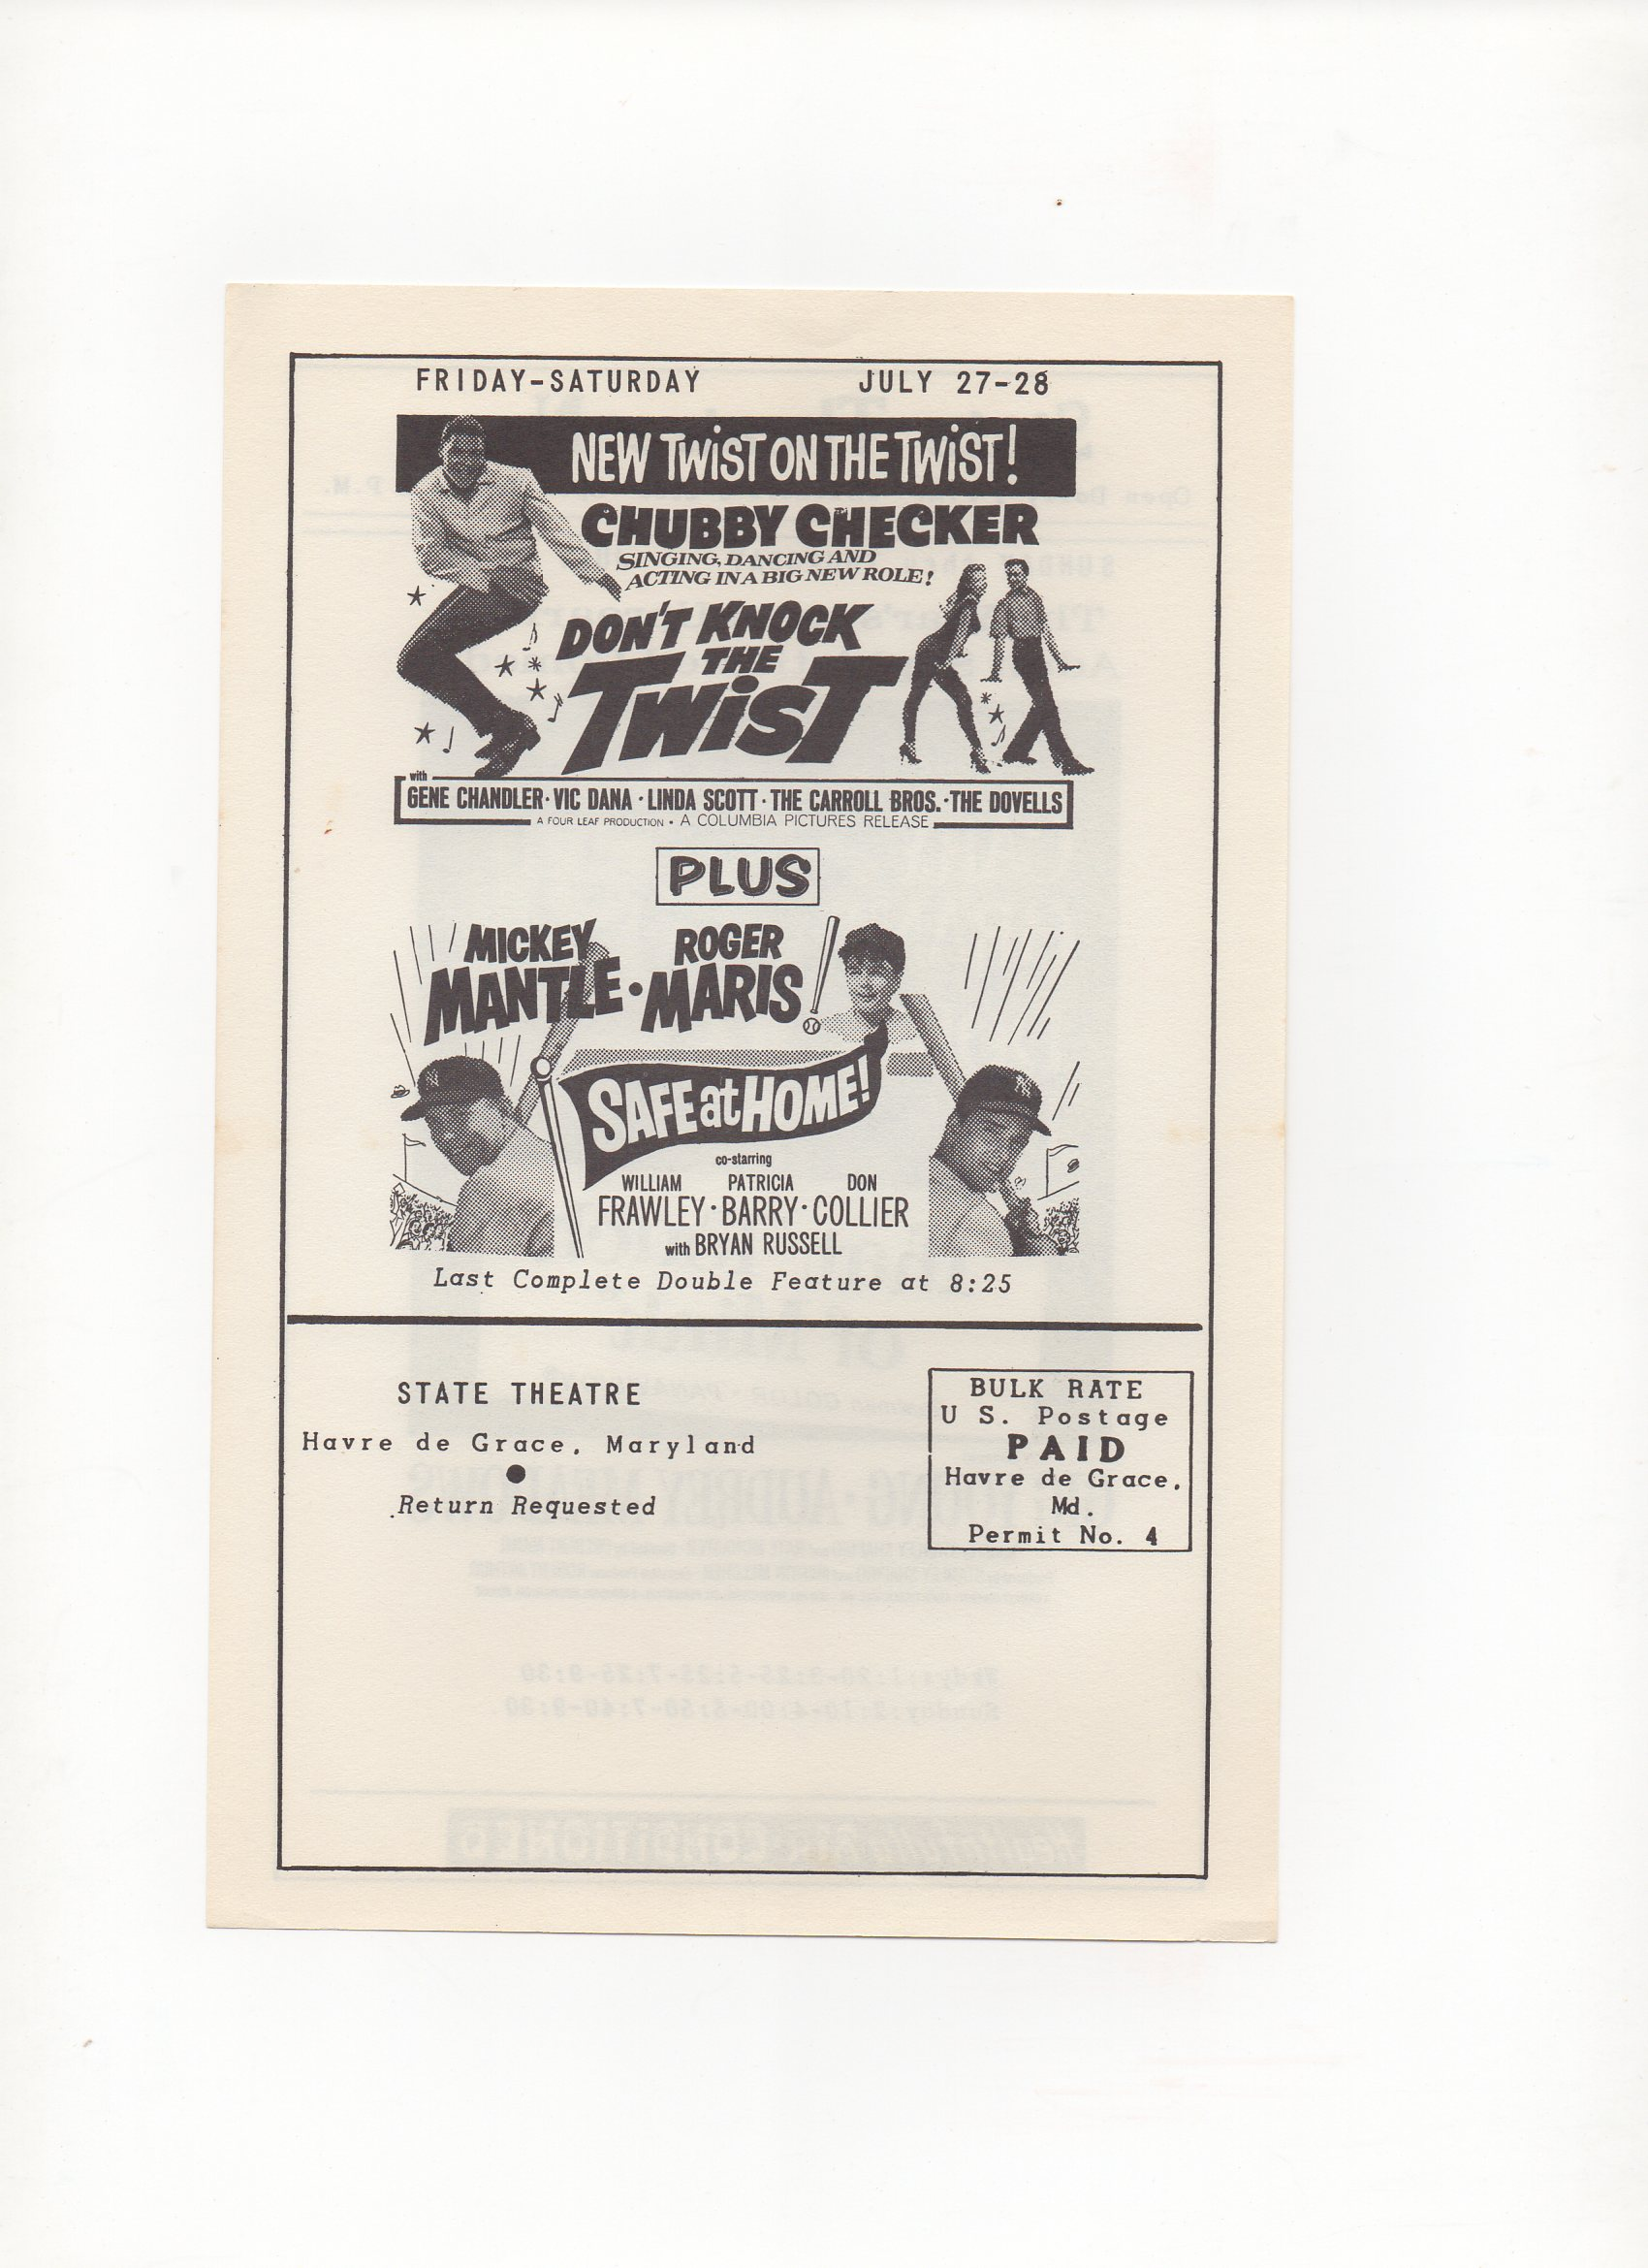 1962 state theatre, havre de grace, maryland, small mailer